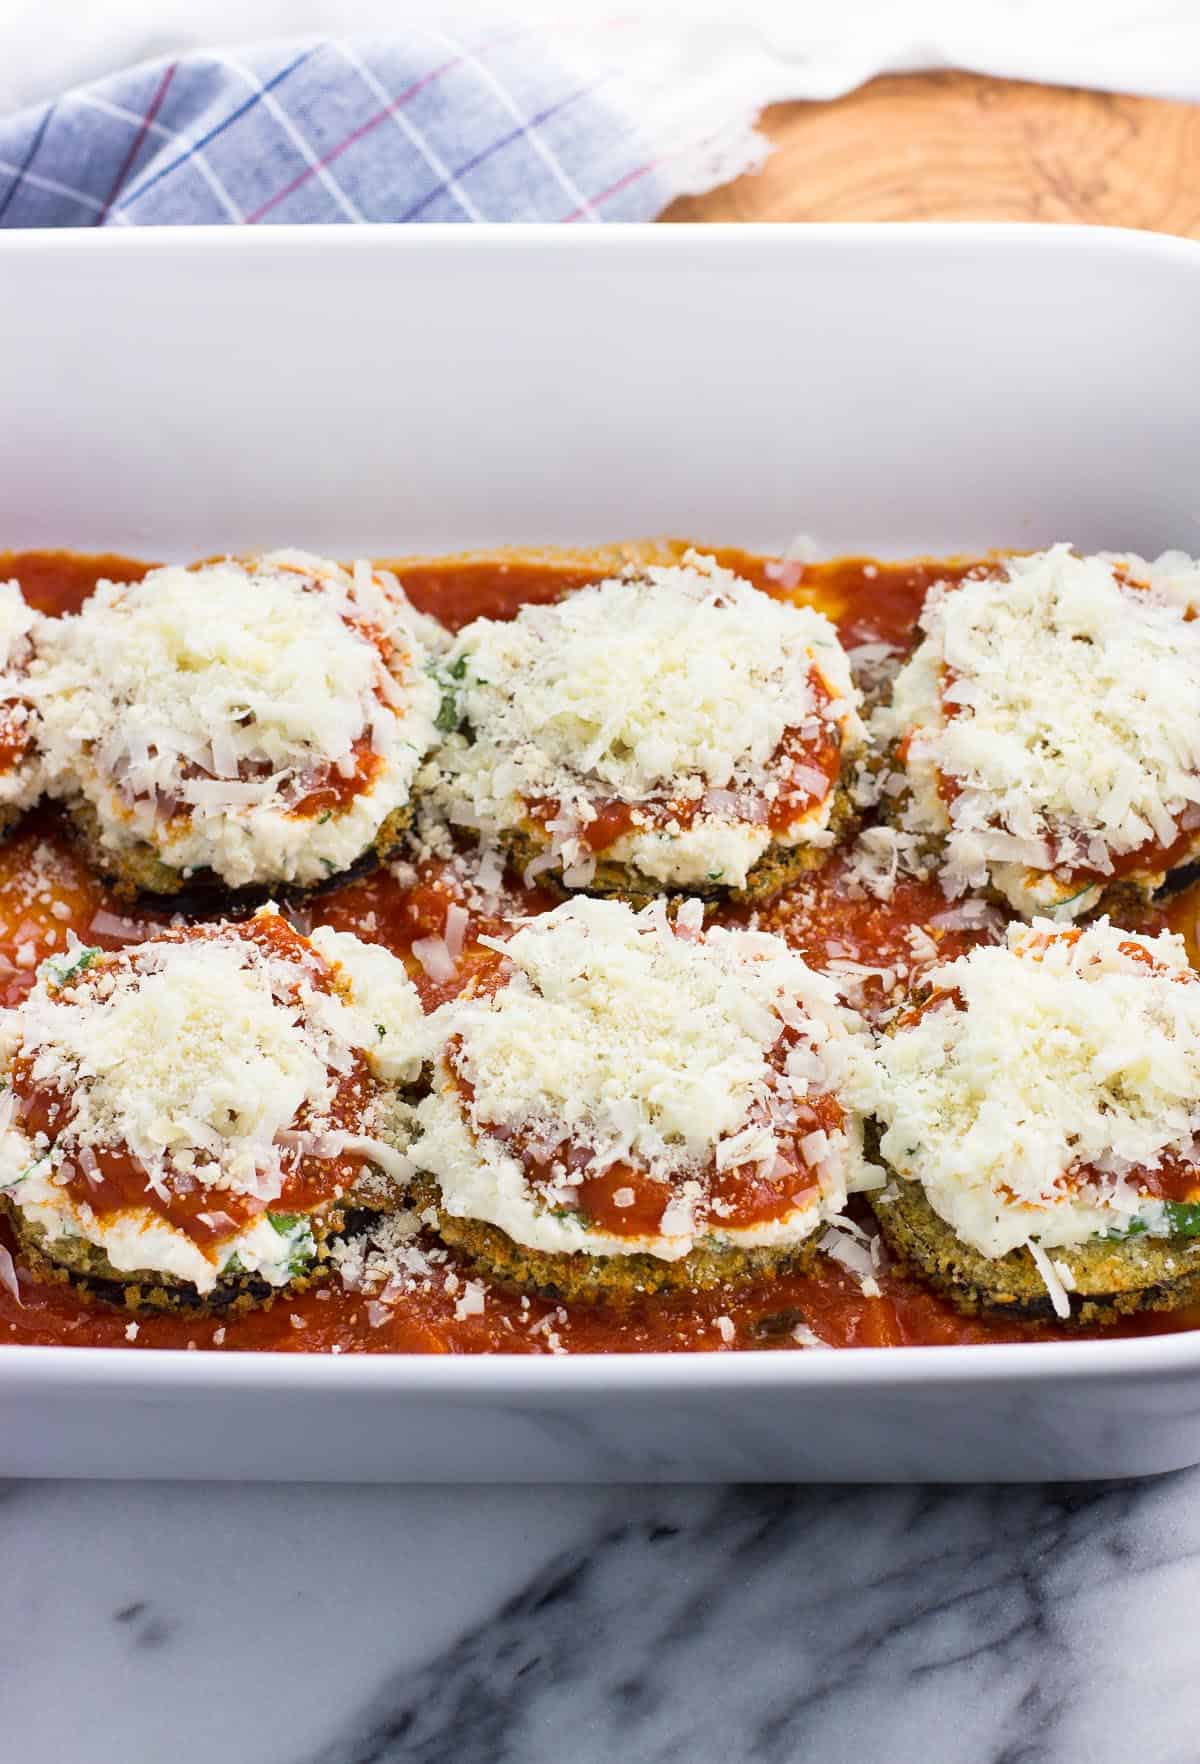 Cheese on top of the sauce and ricotta on the eggplant rounds.